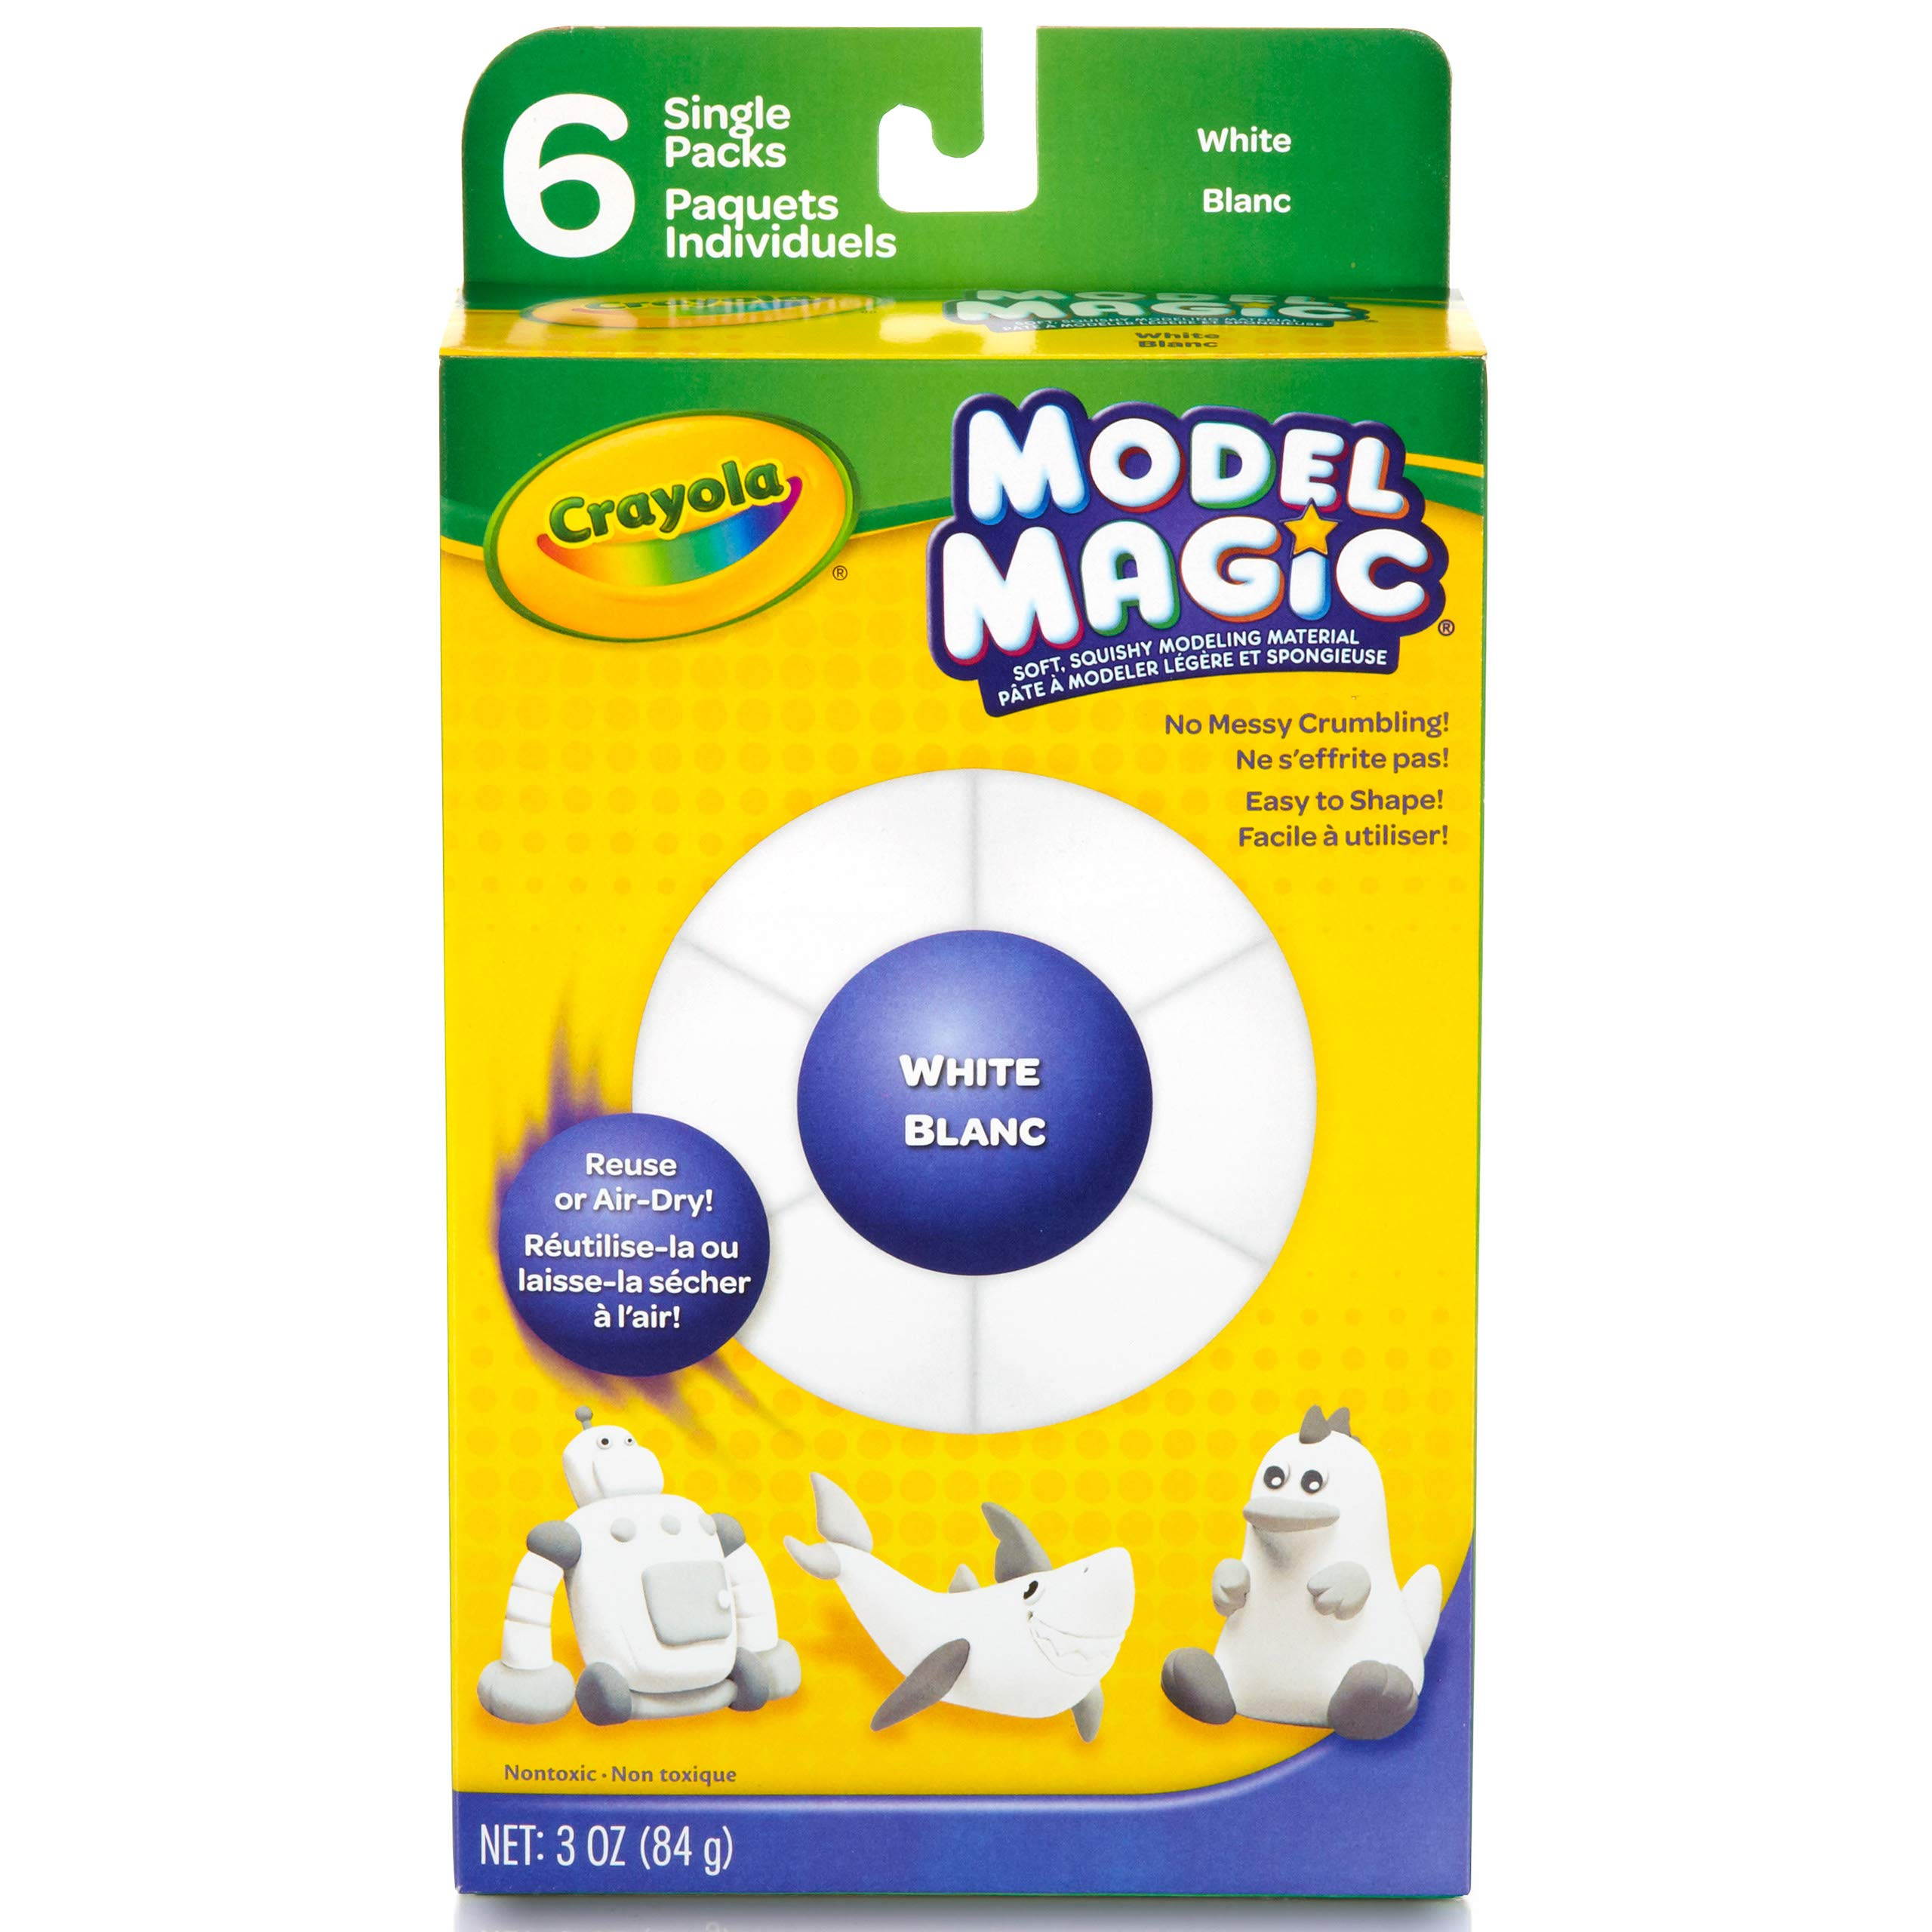 Crayola Model Magic Single Packs, White, .5oz Single Packs (6 Count Box), Crafts For Kids 4 & Up